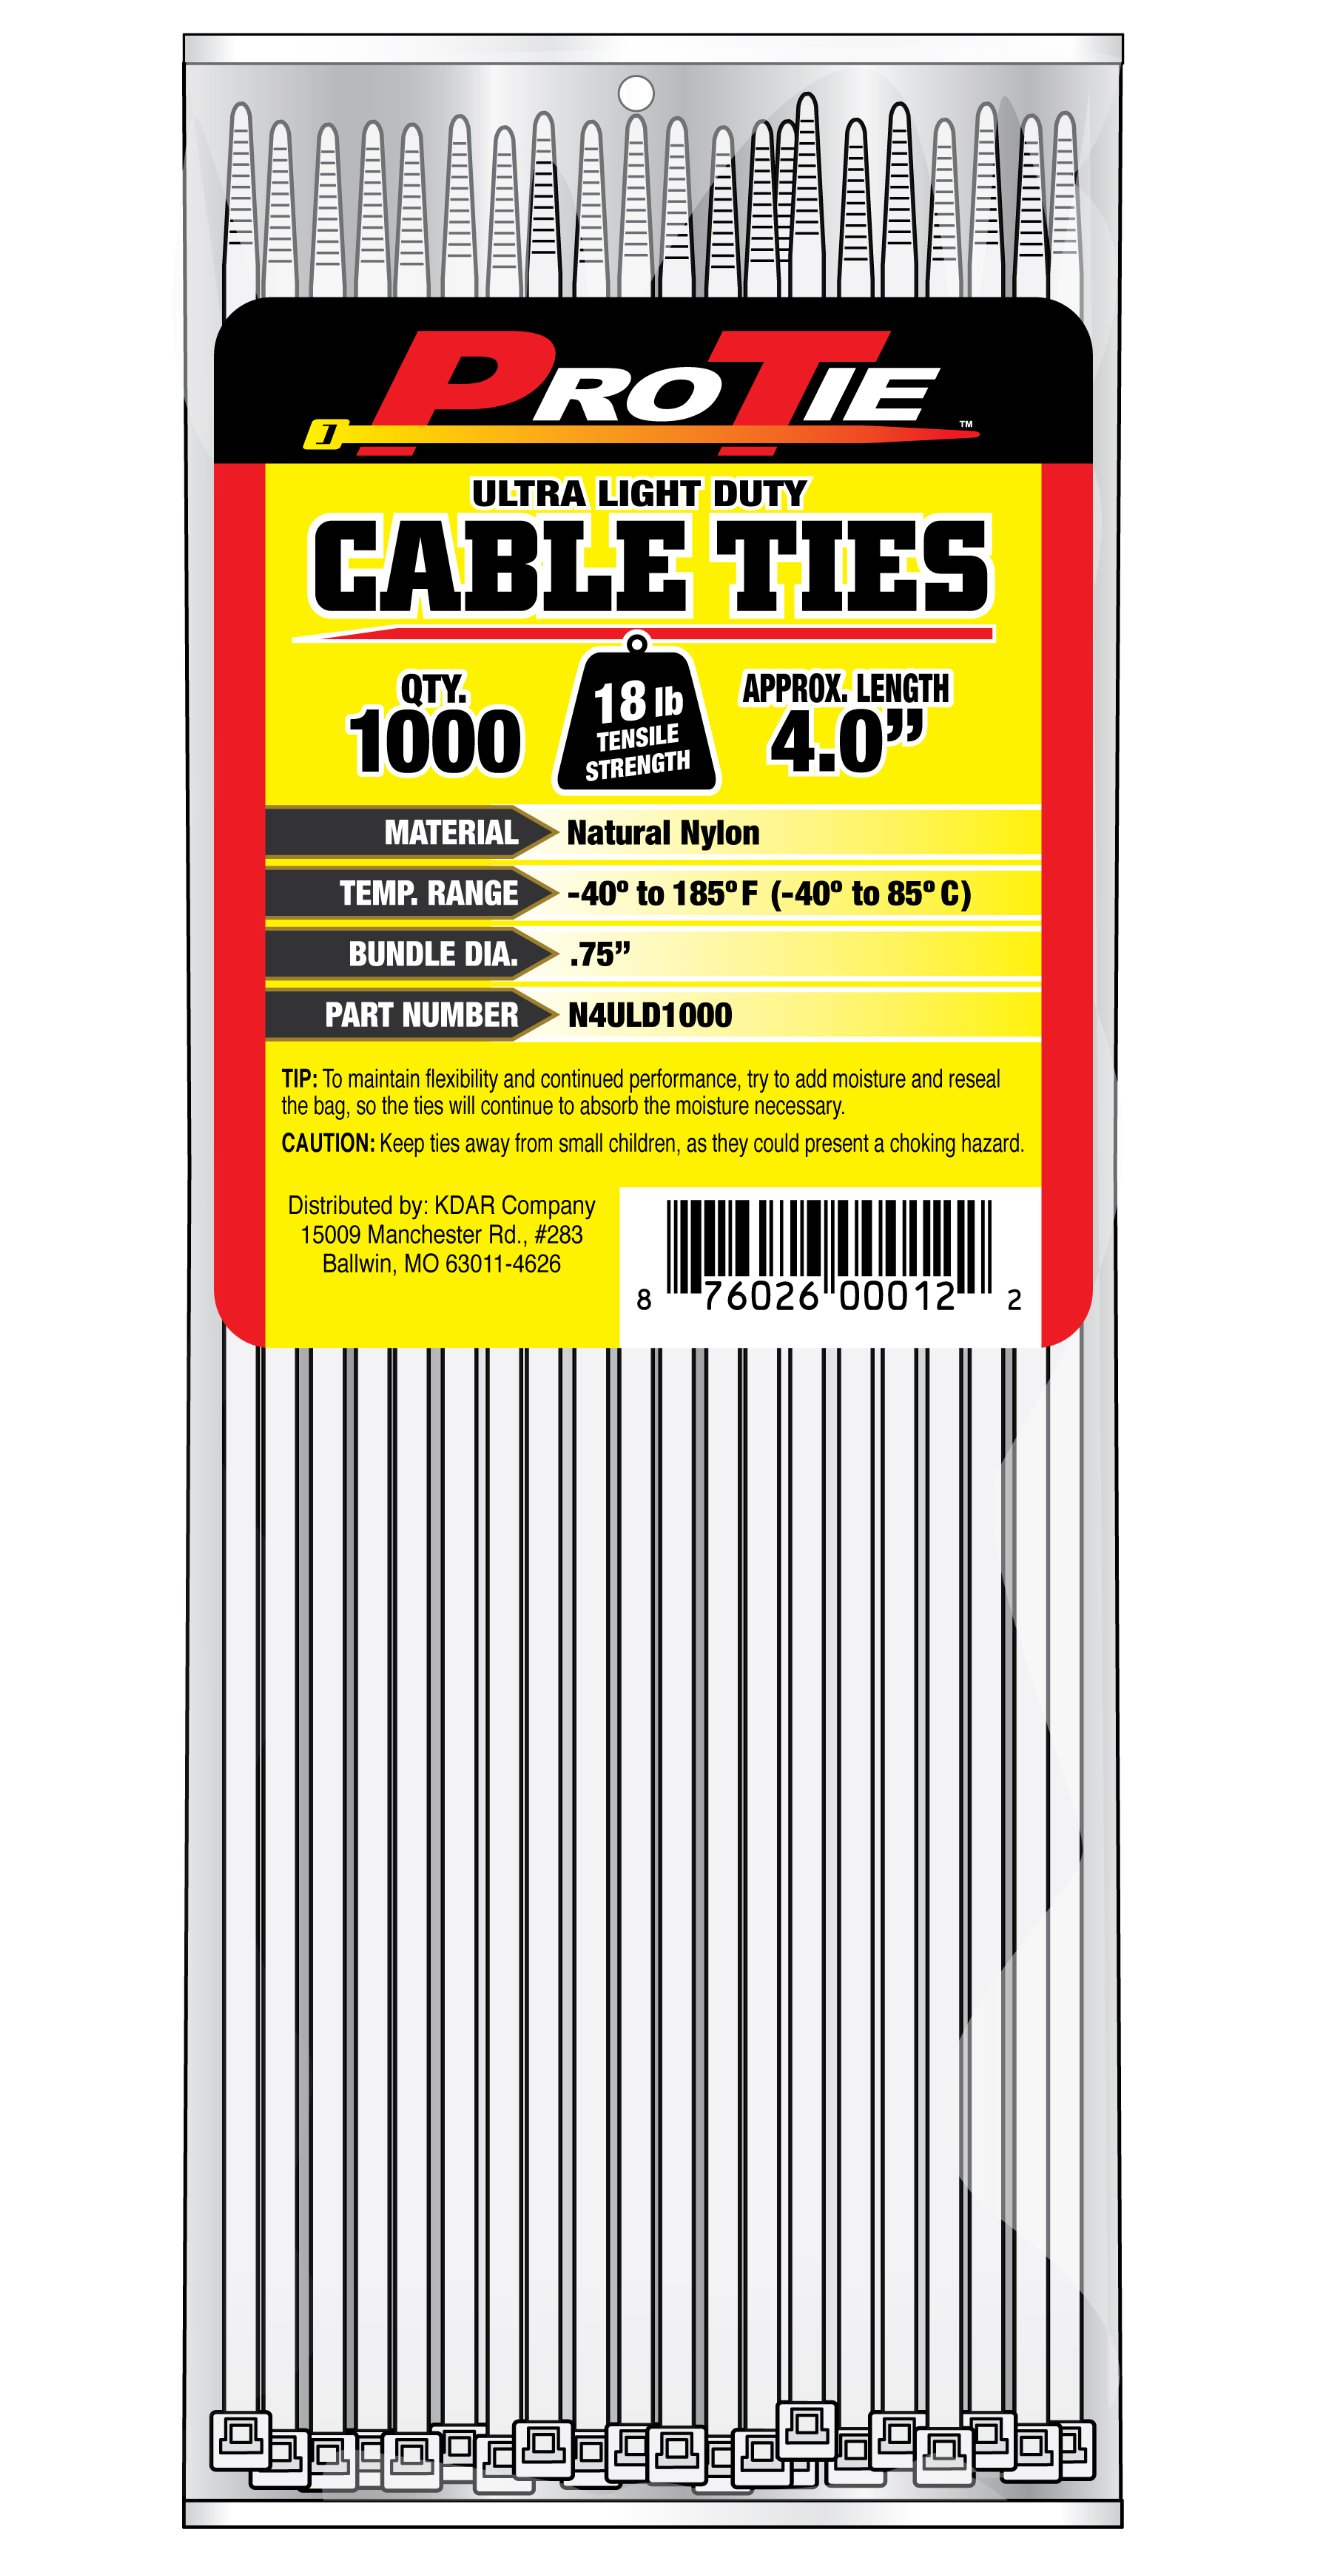 Pro Tie N4ULD1000 4-Inch Ultra Light Duty Standard Cable Tie, Natural Nylon, 1000-Pack by Pro Tie